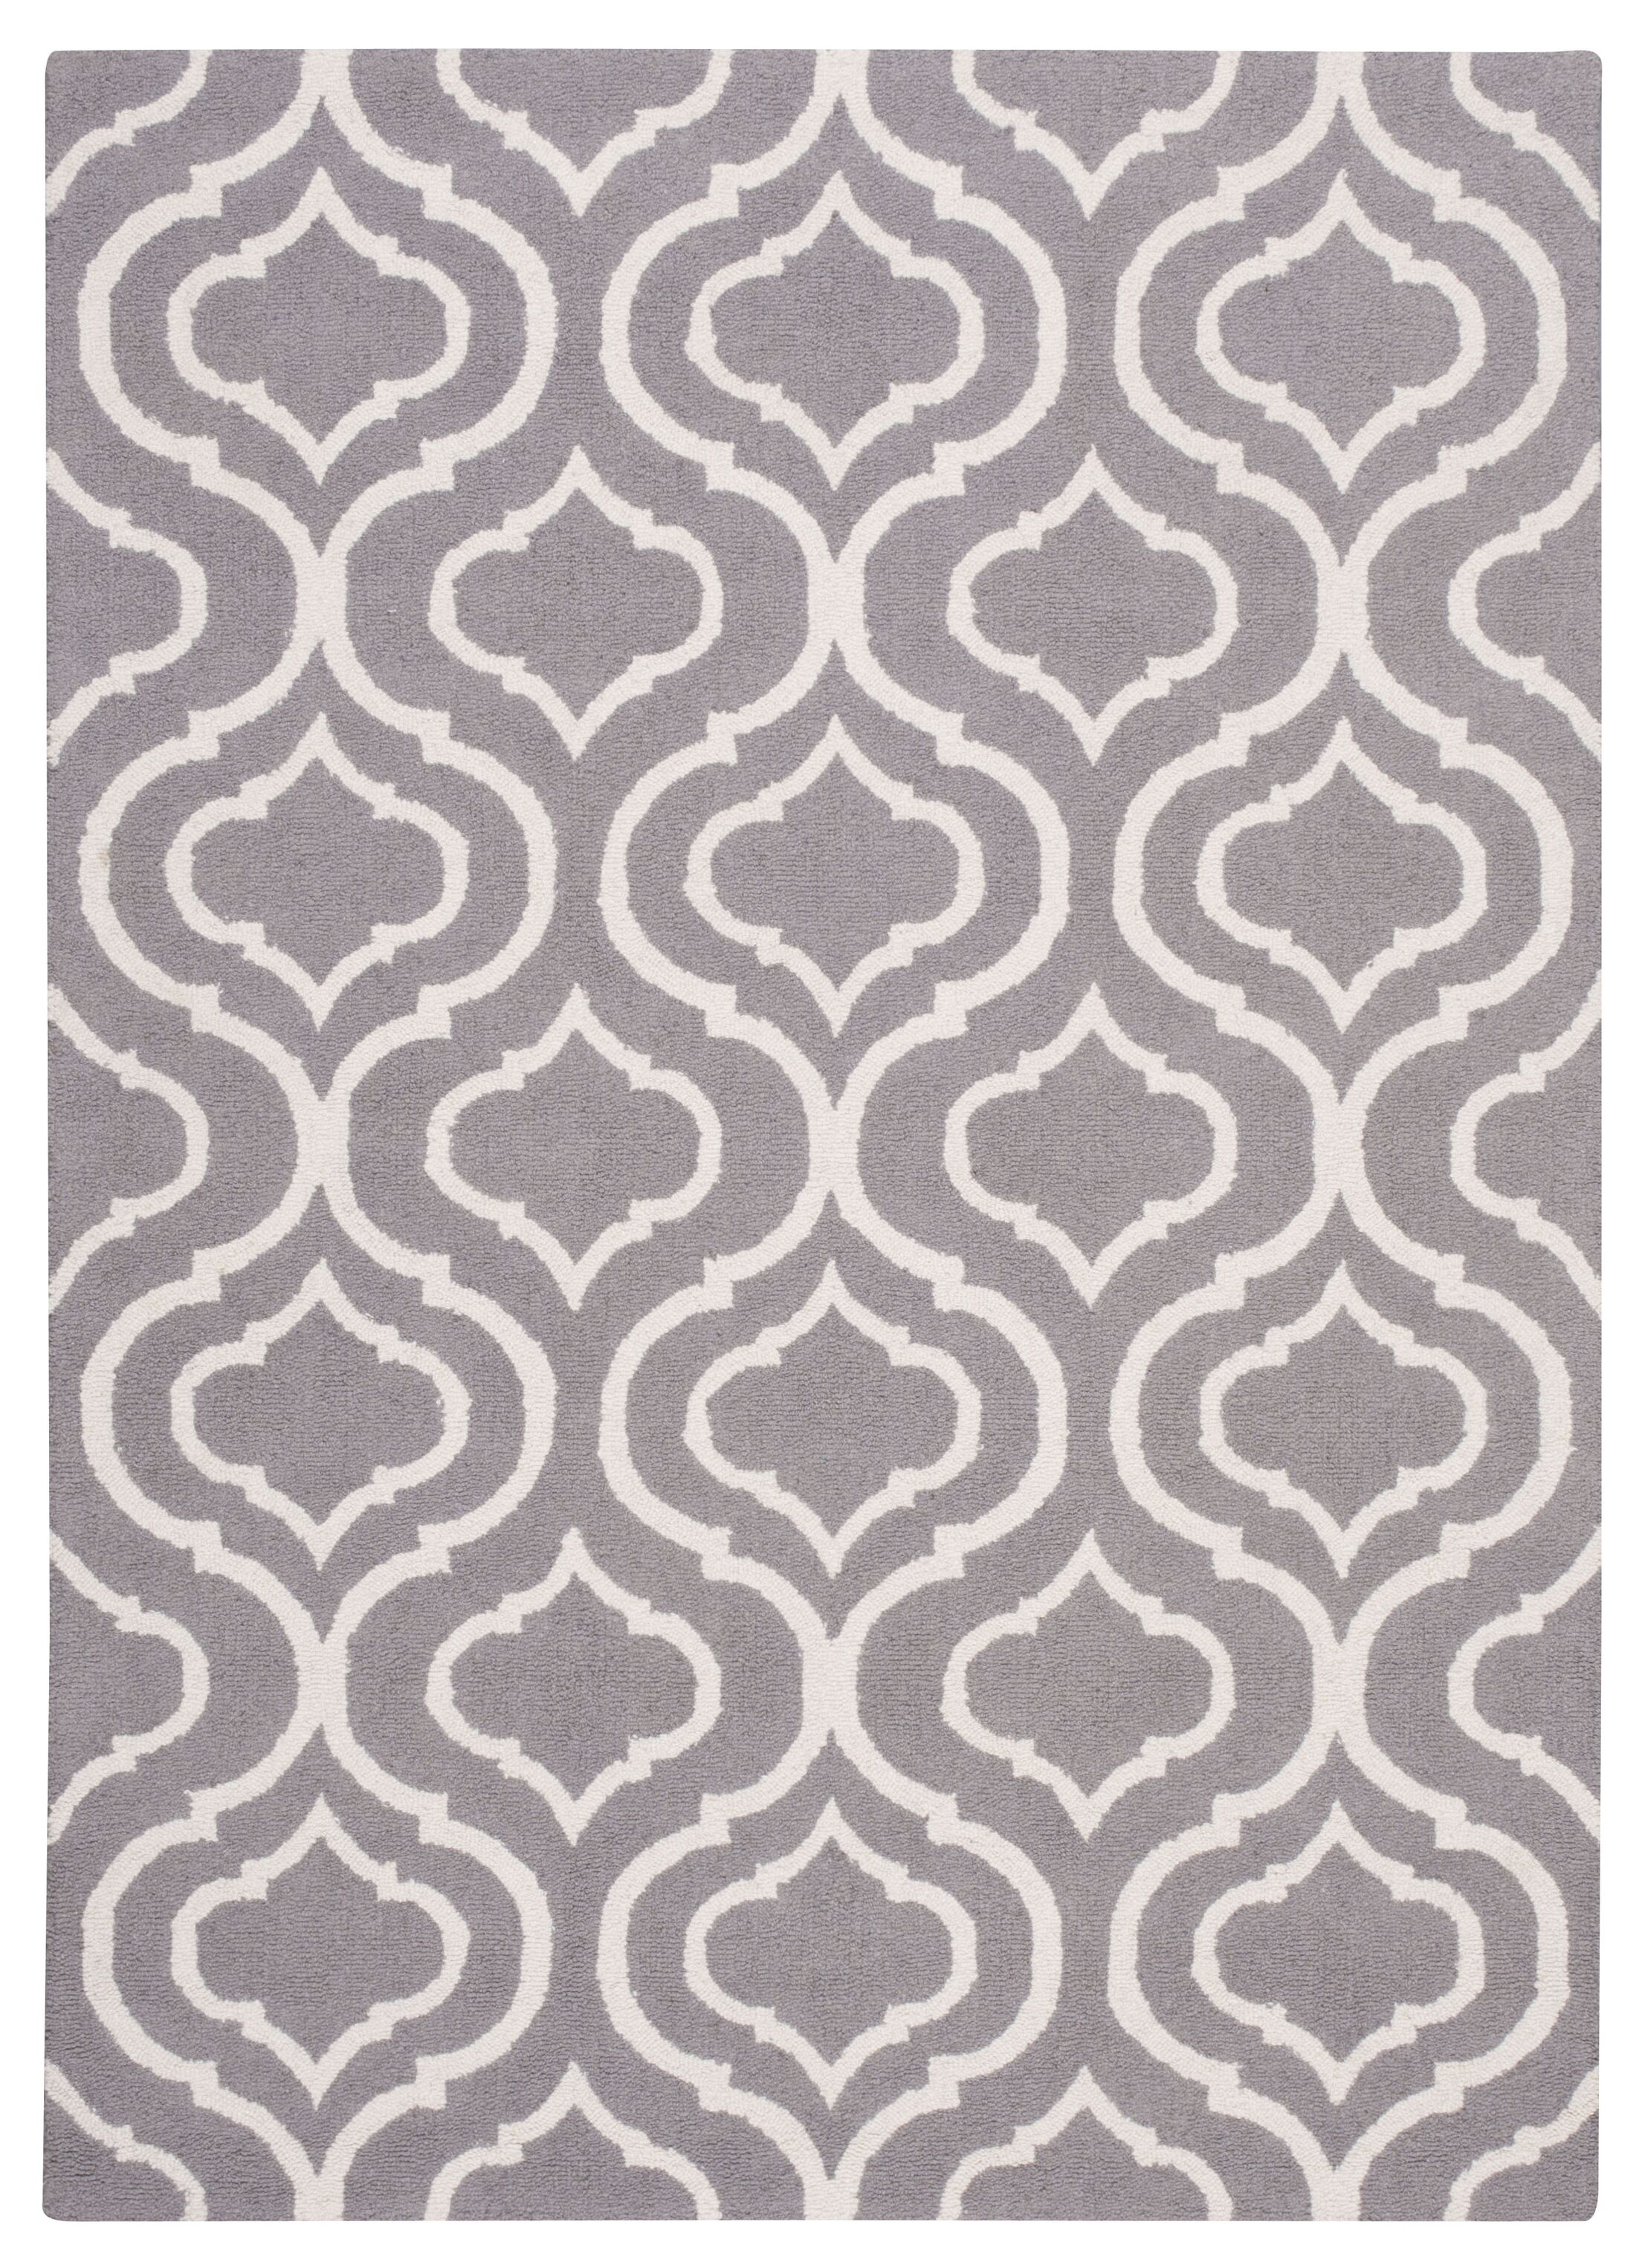 Aidyn Hand-Hooked Gray Area Rug Rug Size: Rectangle 3'9